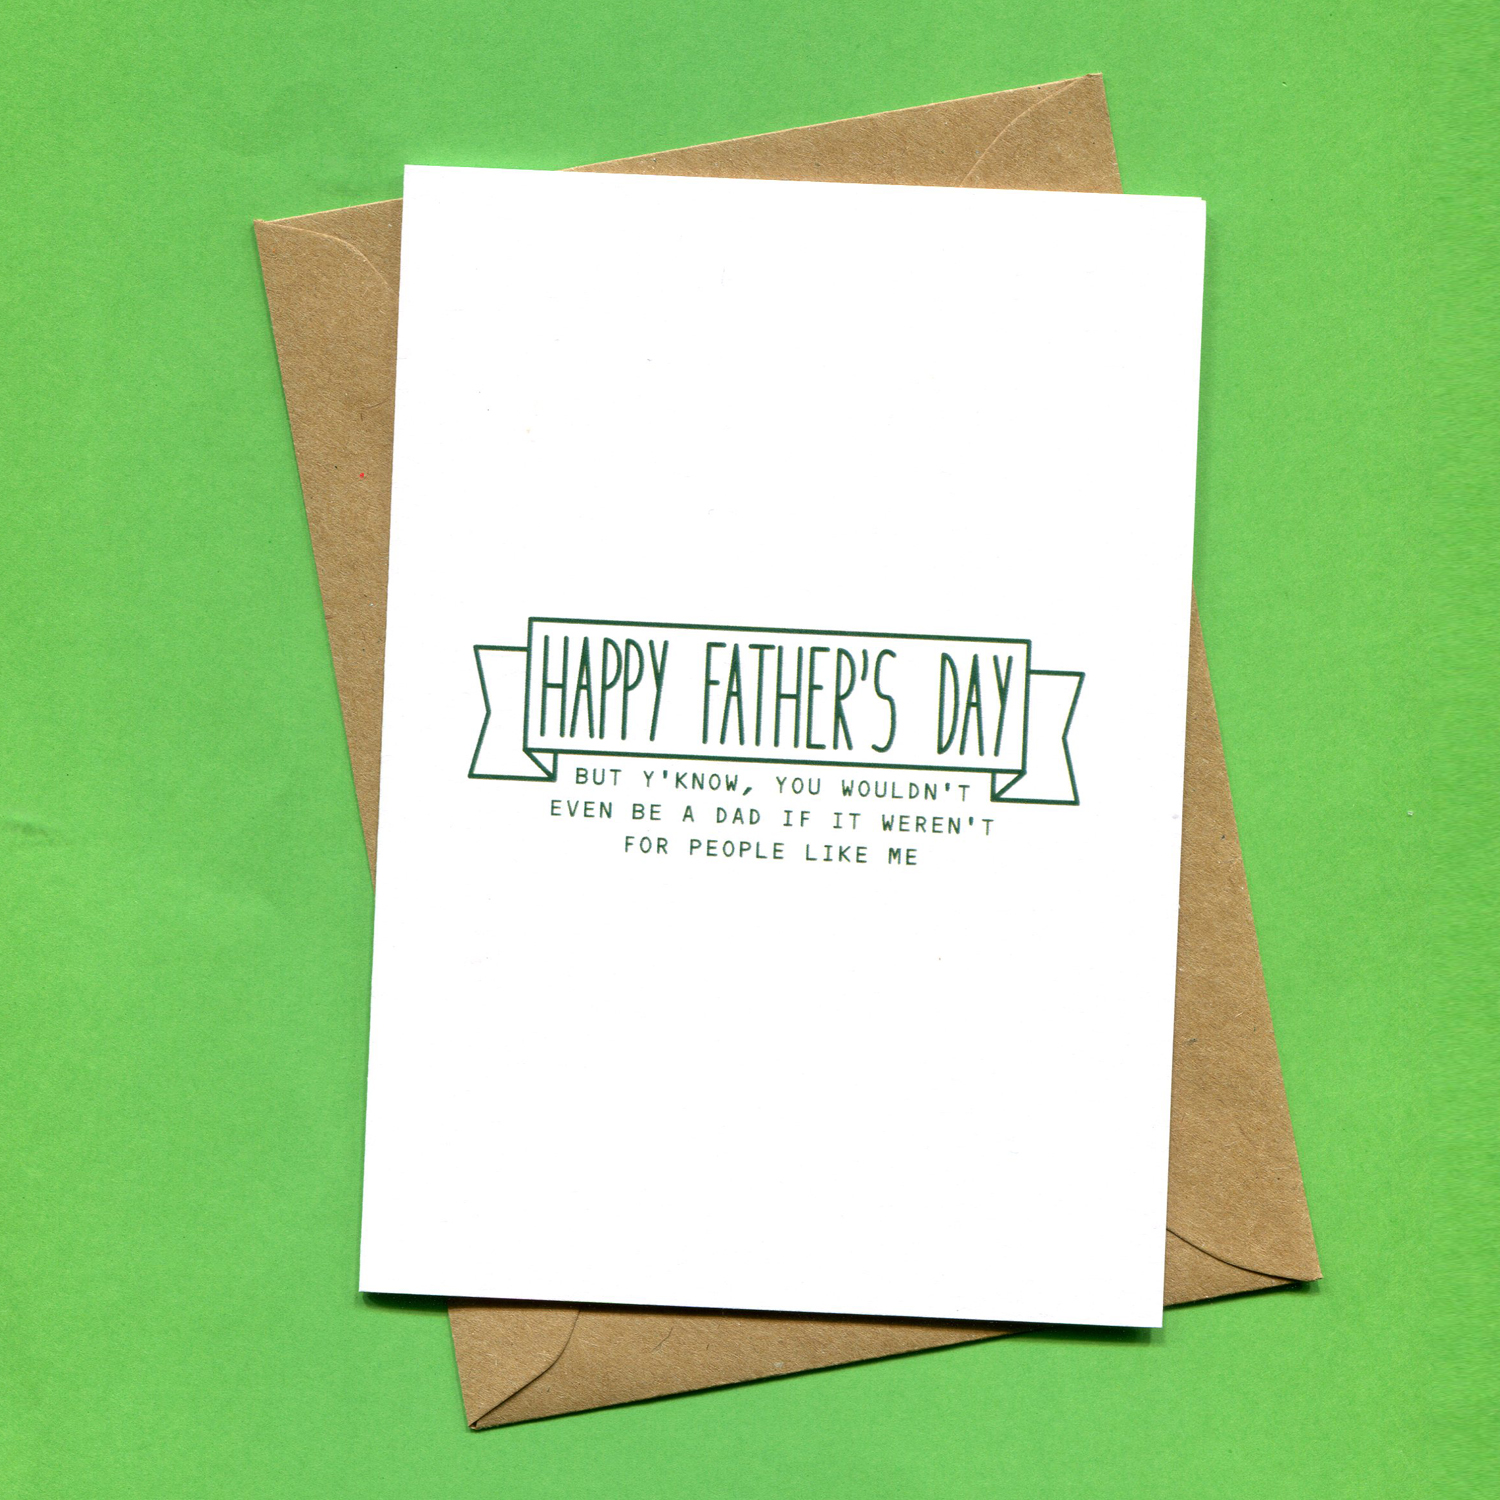 Catalogue_Things by Bean Happy Fathers Day But You Know Funny Dad Greeting Card.jpg